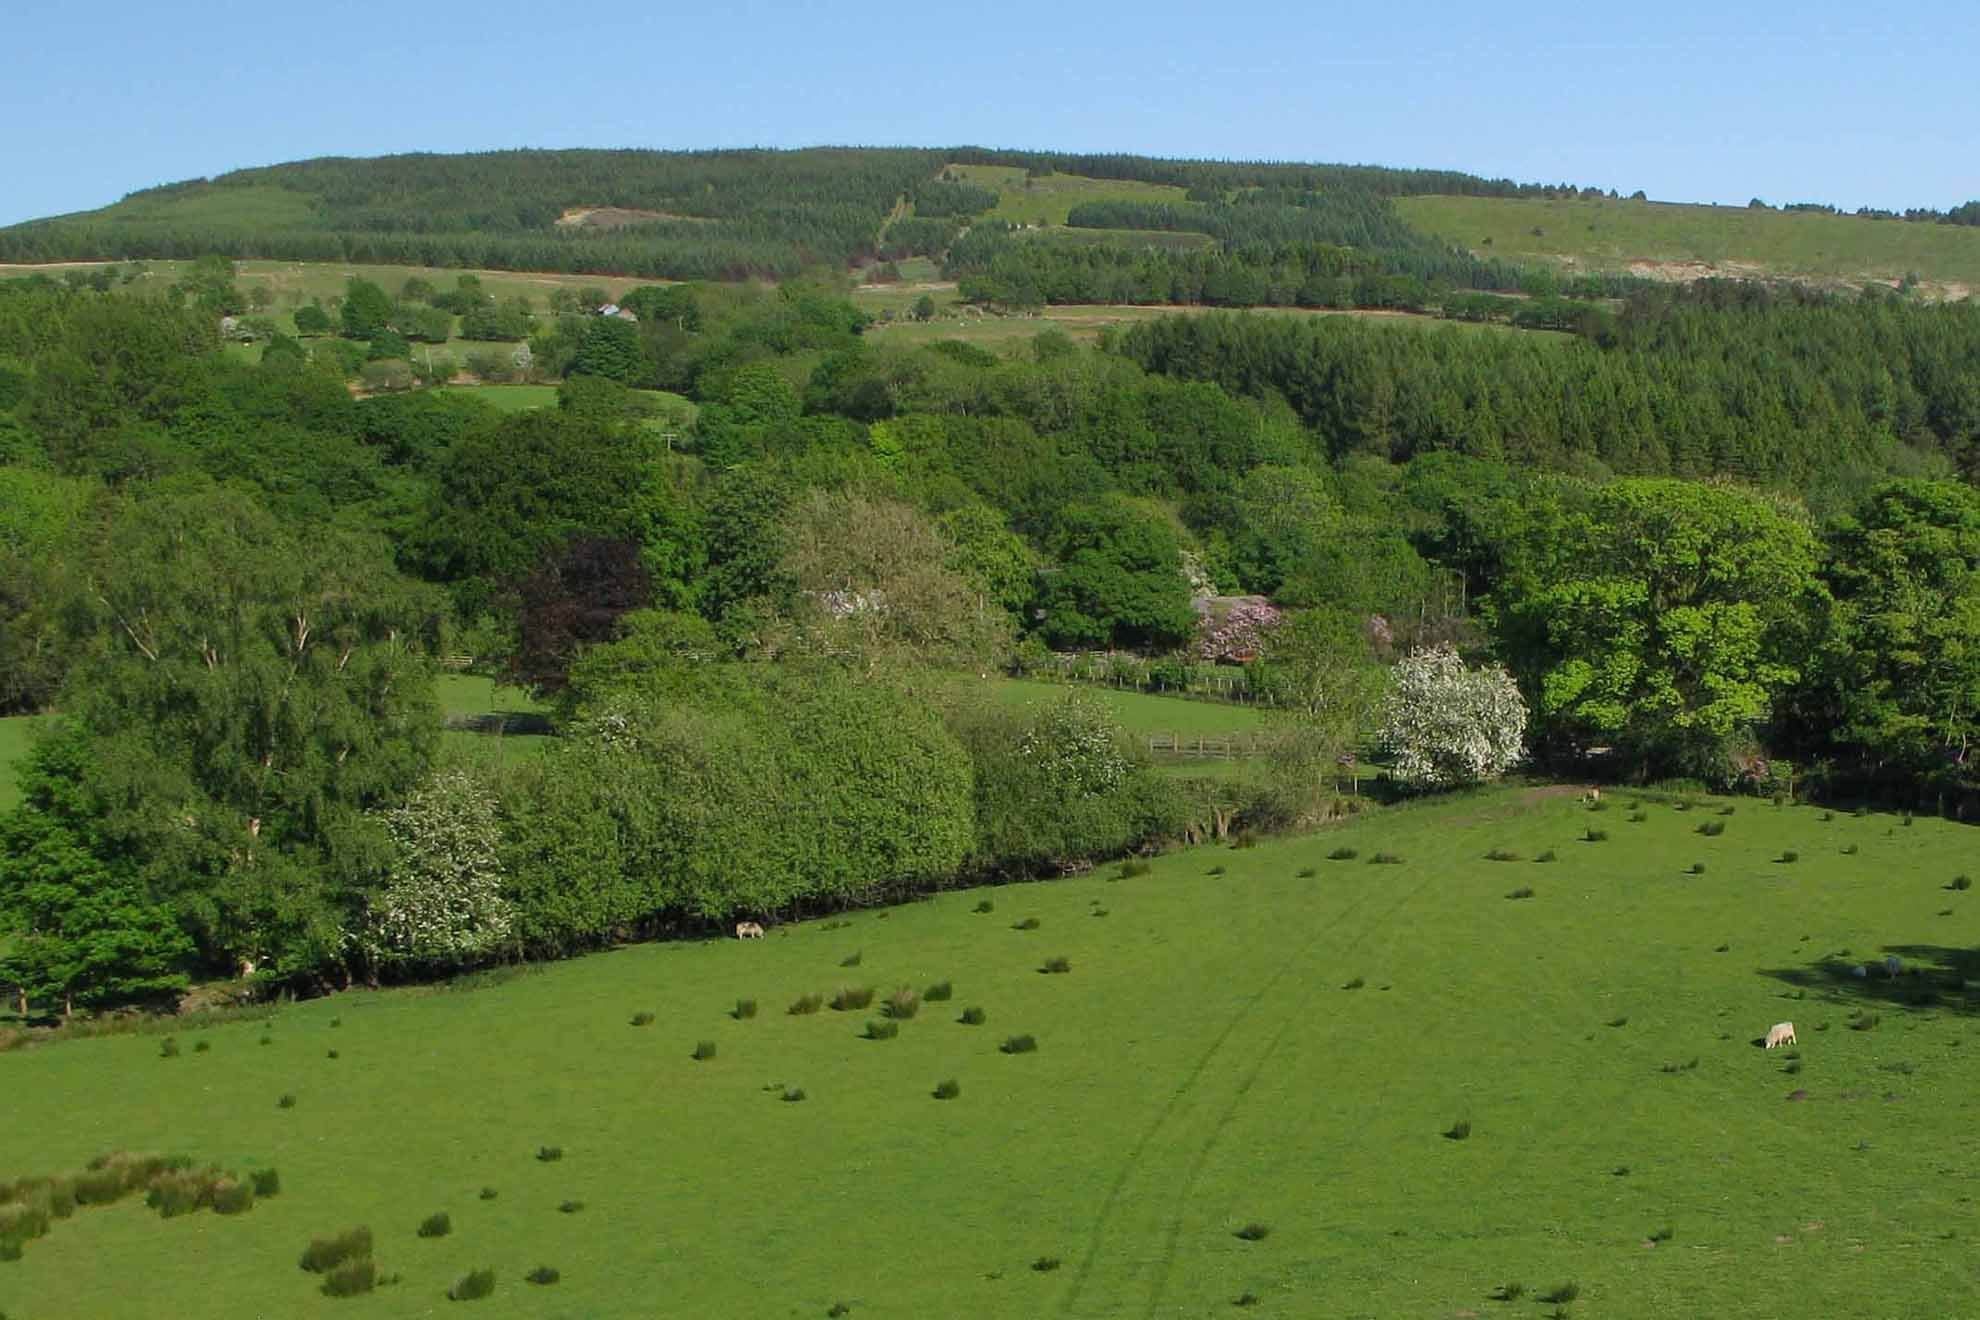 The holiday cottages are located just to the left of the flowering Rhododendron